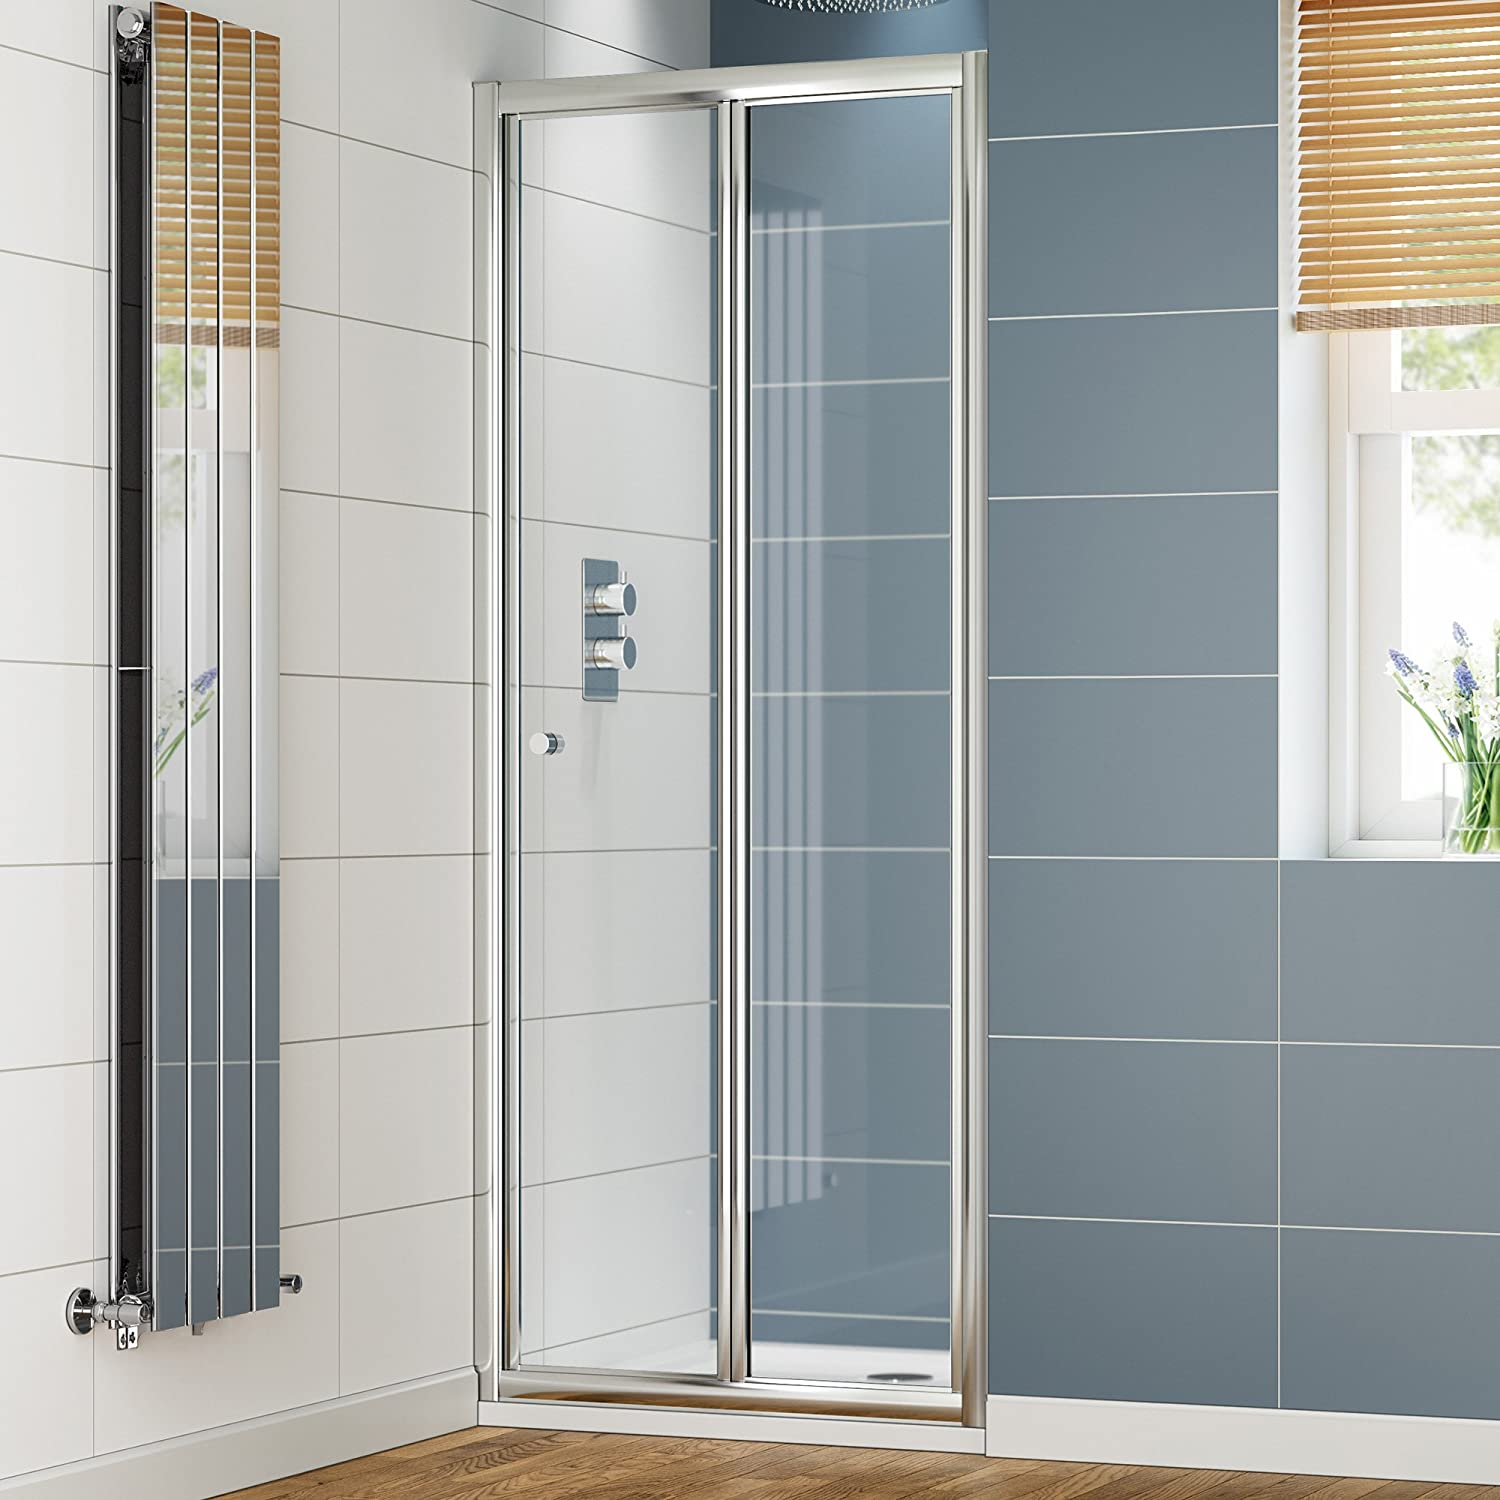 iBathUK 800 x 800 Bifold Glass Shower Enclosure Reversible Folding ...